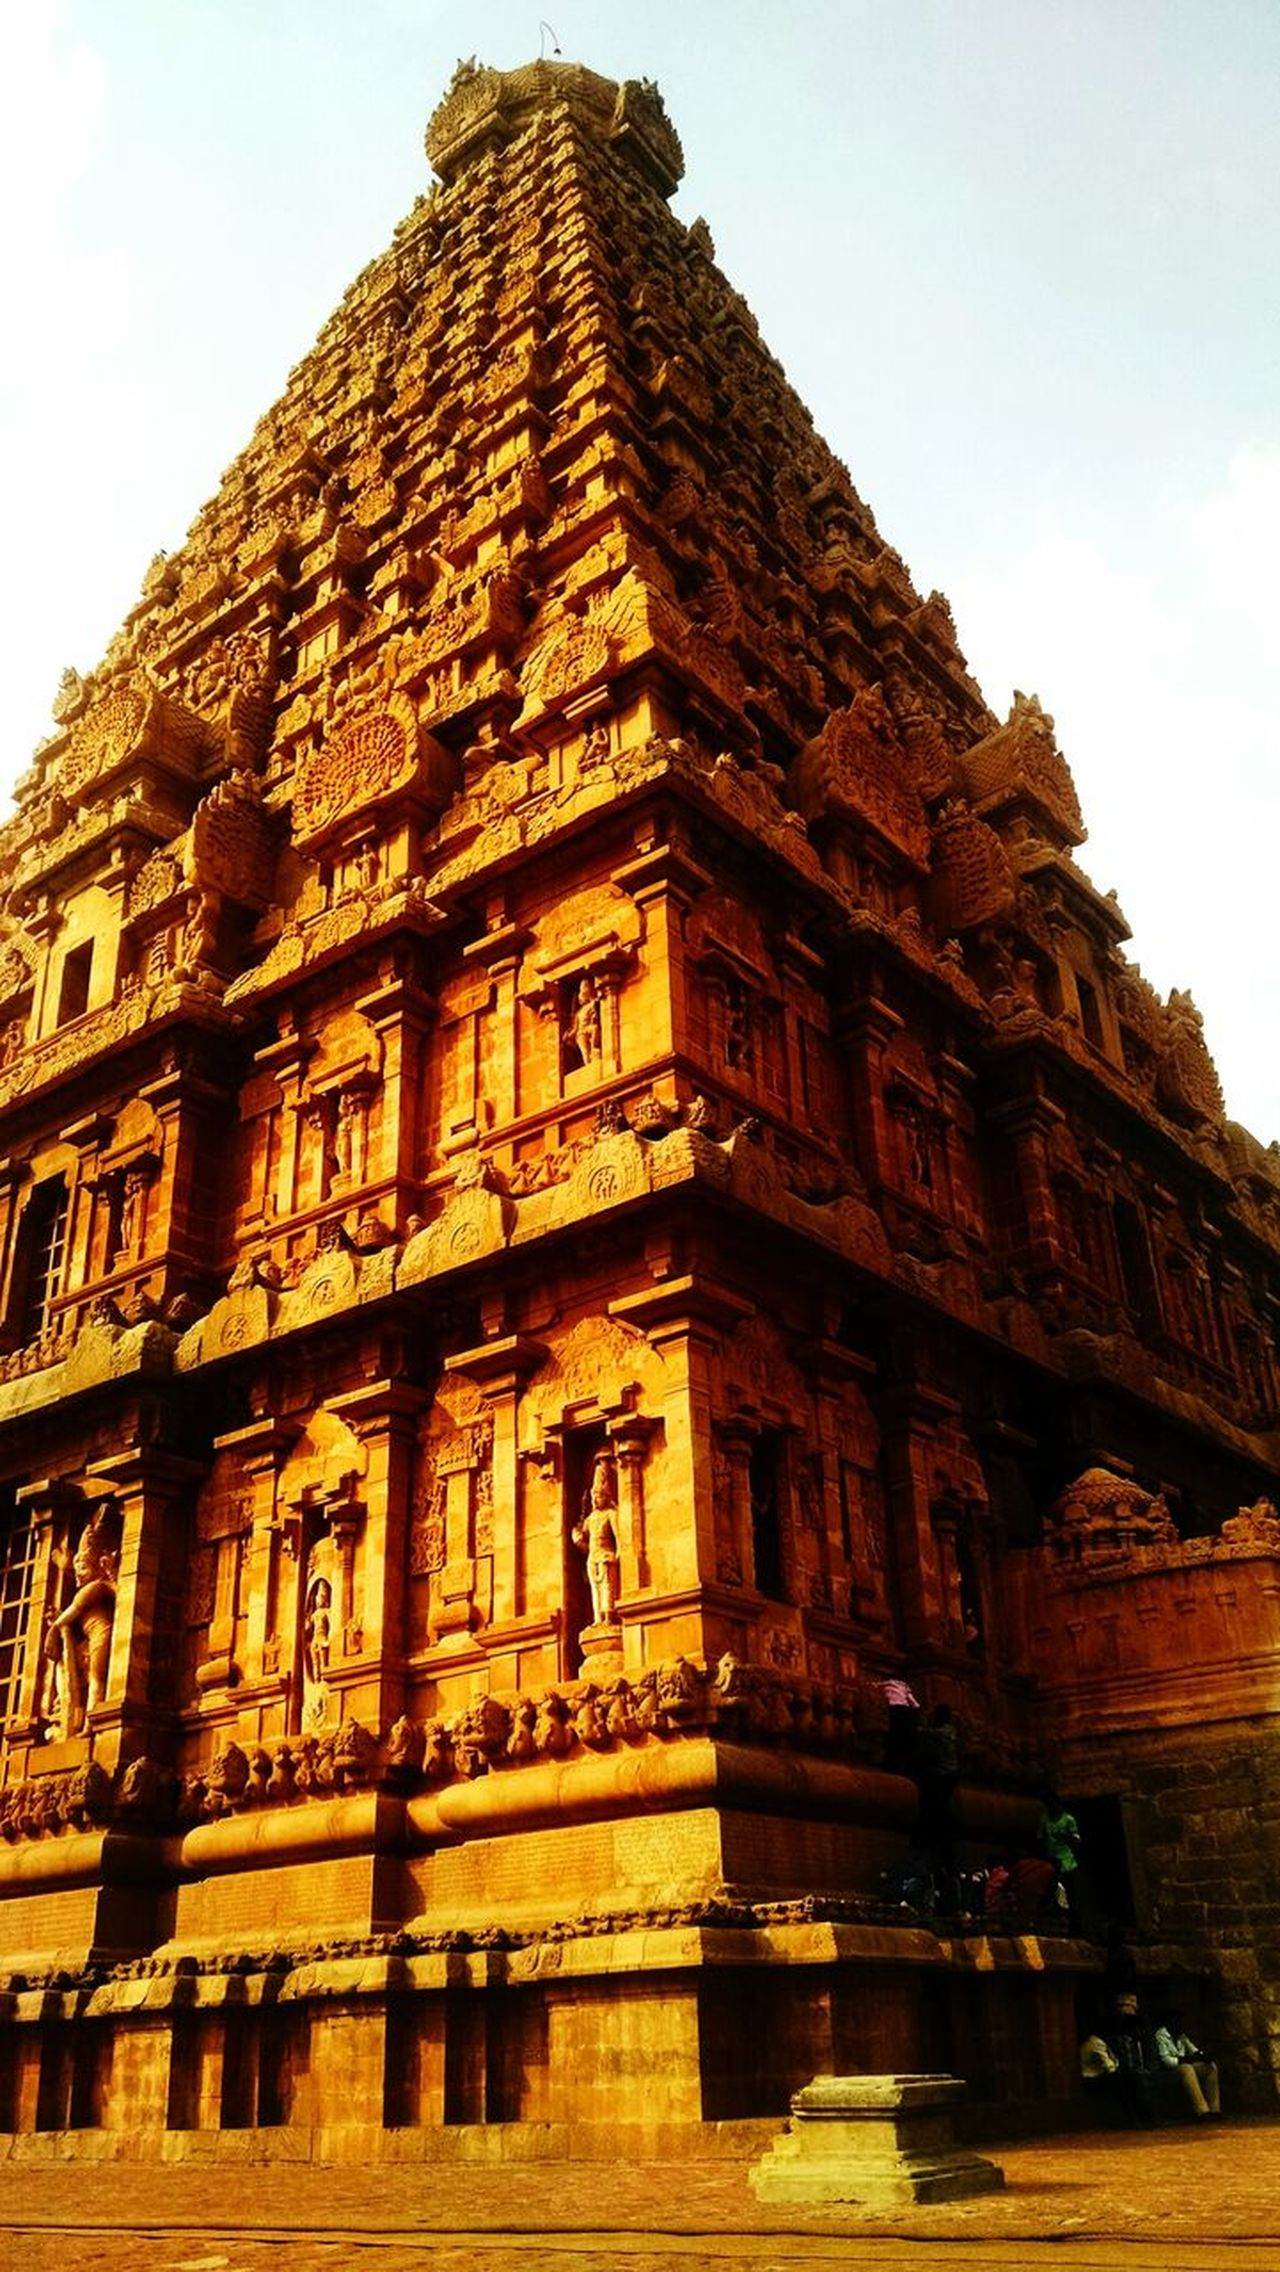 Architecture Religion Travel Destinations Low Angle View History Travel Built Structure Day Building Exterior Ancient Civilization King - Royal Person No People Sky Place Of Worship Spirituality Archaeology Tamilnadu India Tanjore Big Temple Monument Vacations Outdoors Beauty